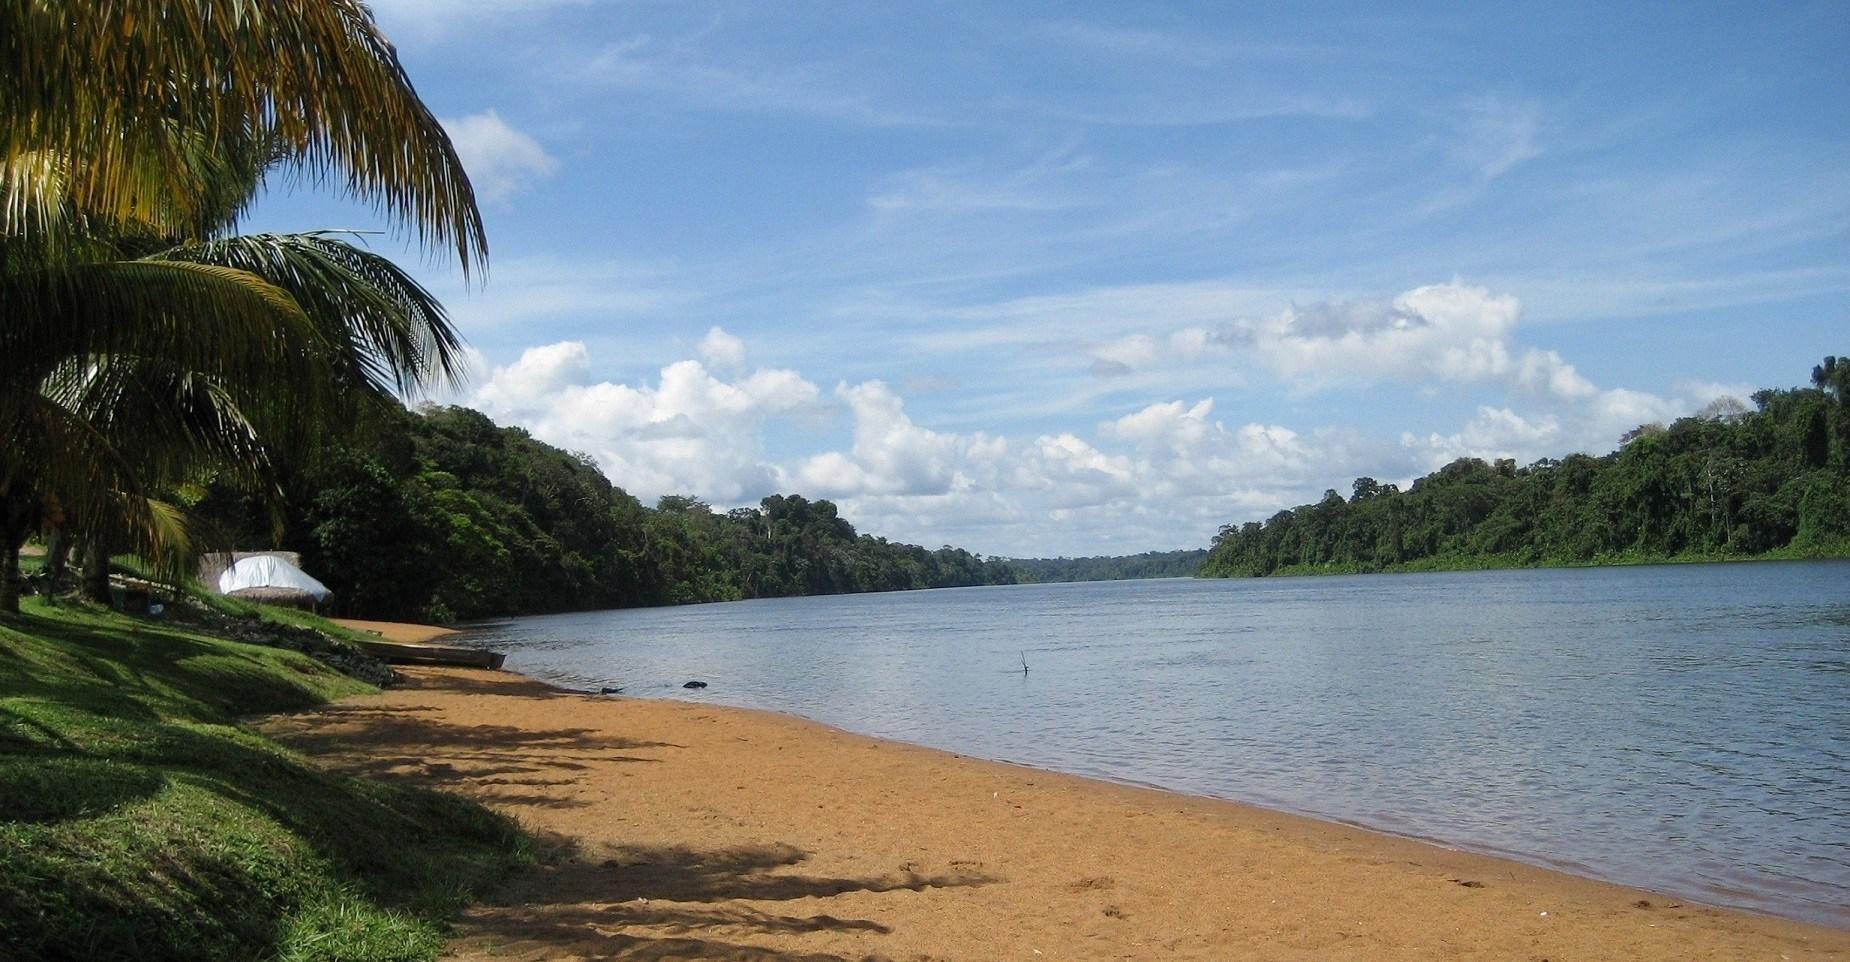 River and Tropical Coas in Suriname Wallpapers